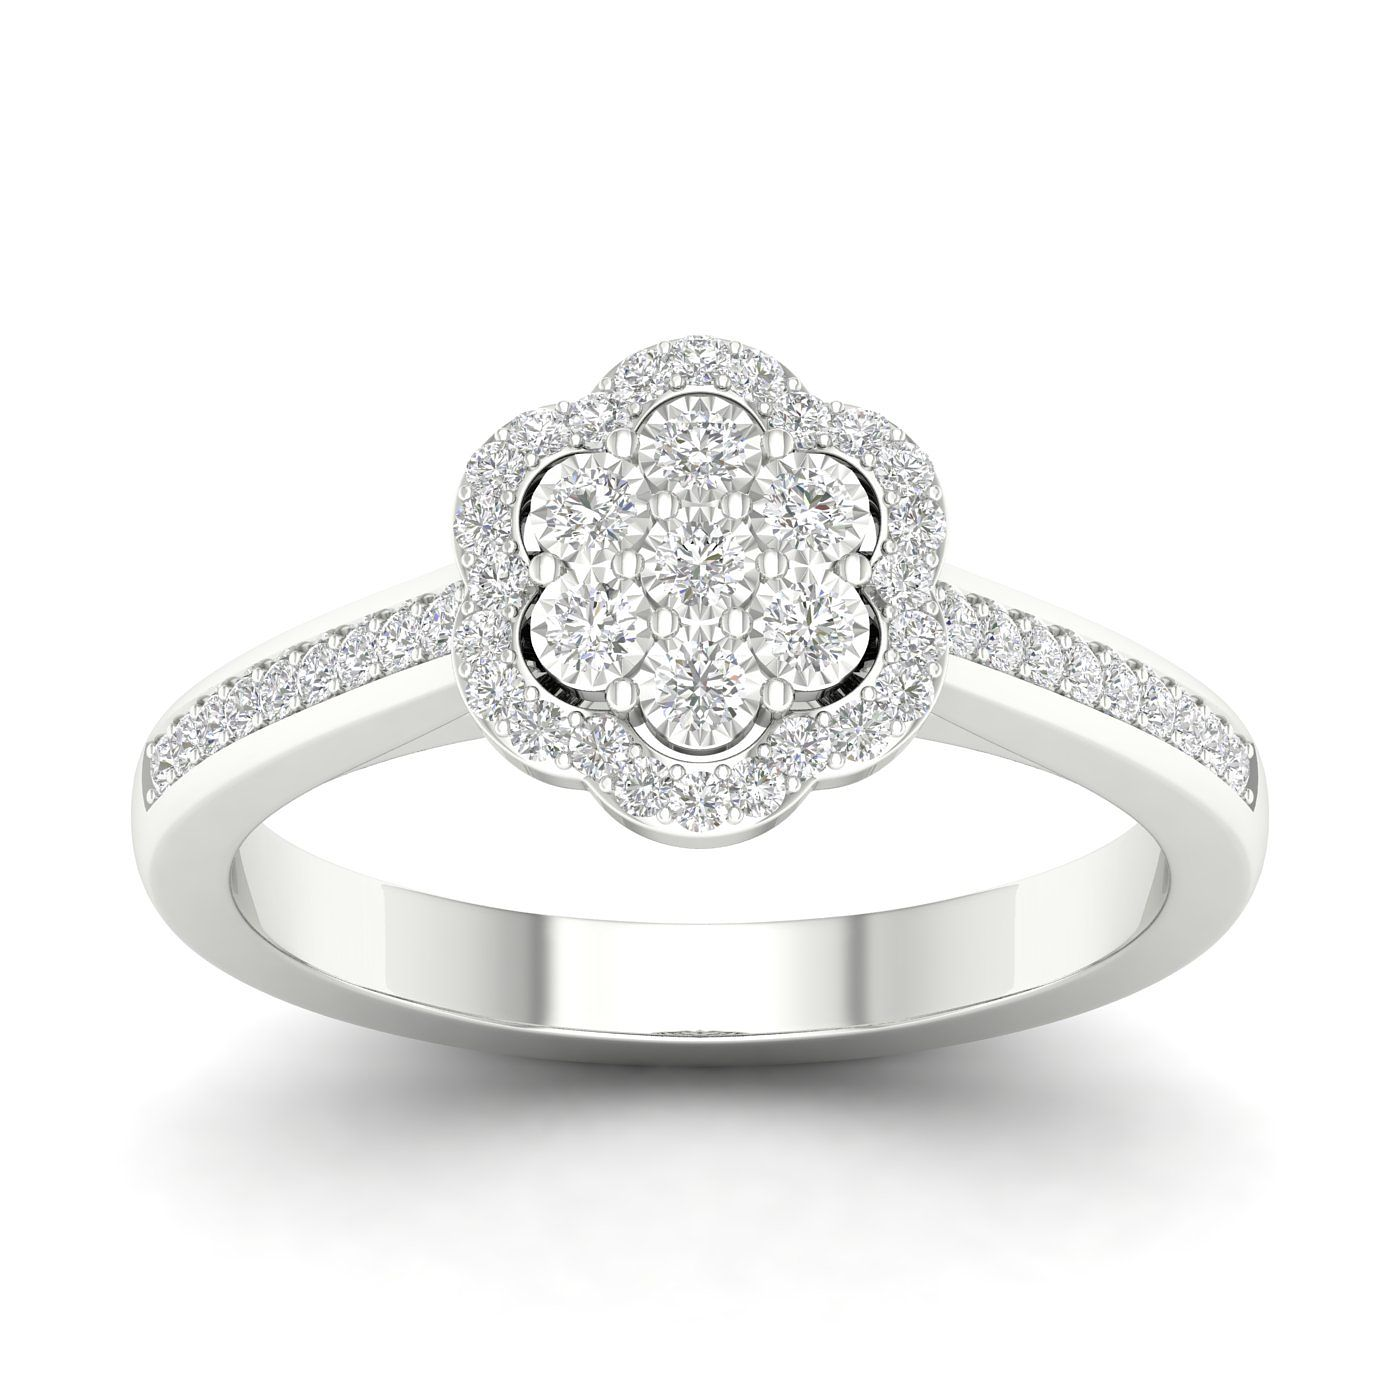 9ct White Gold 1/5ct Diamond Cluster Ring - Product number 5947782